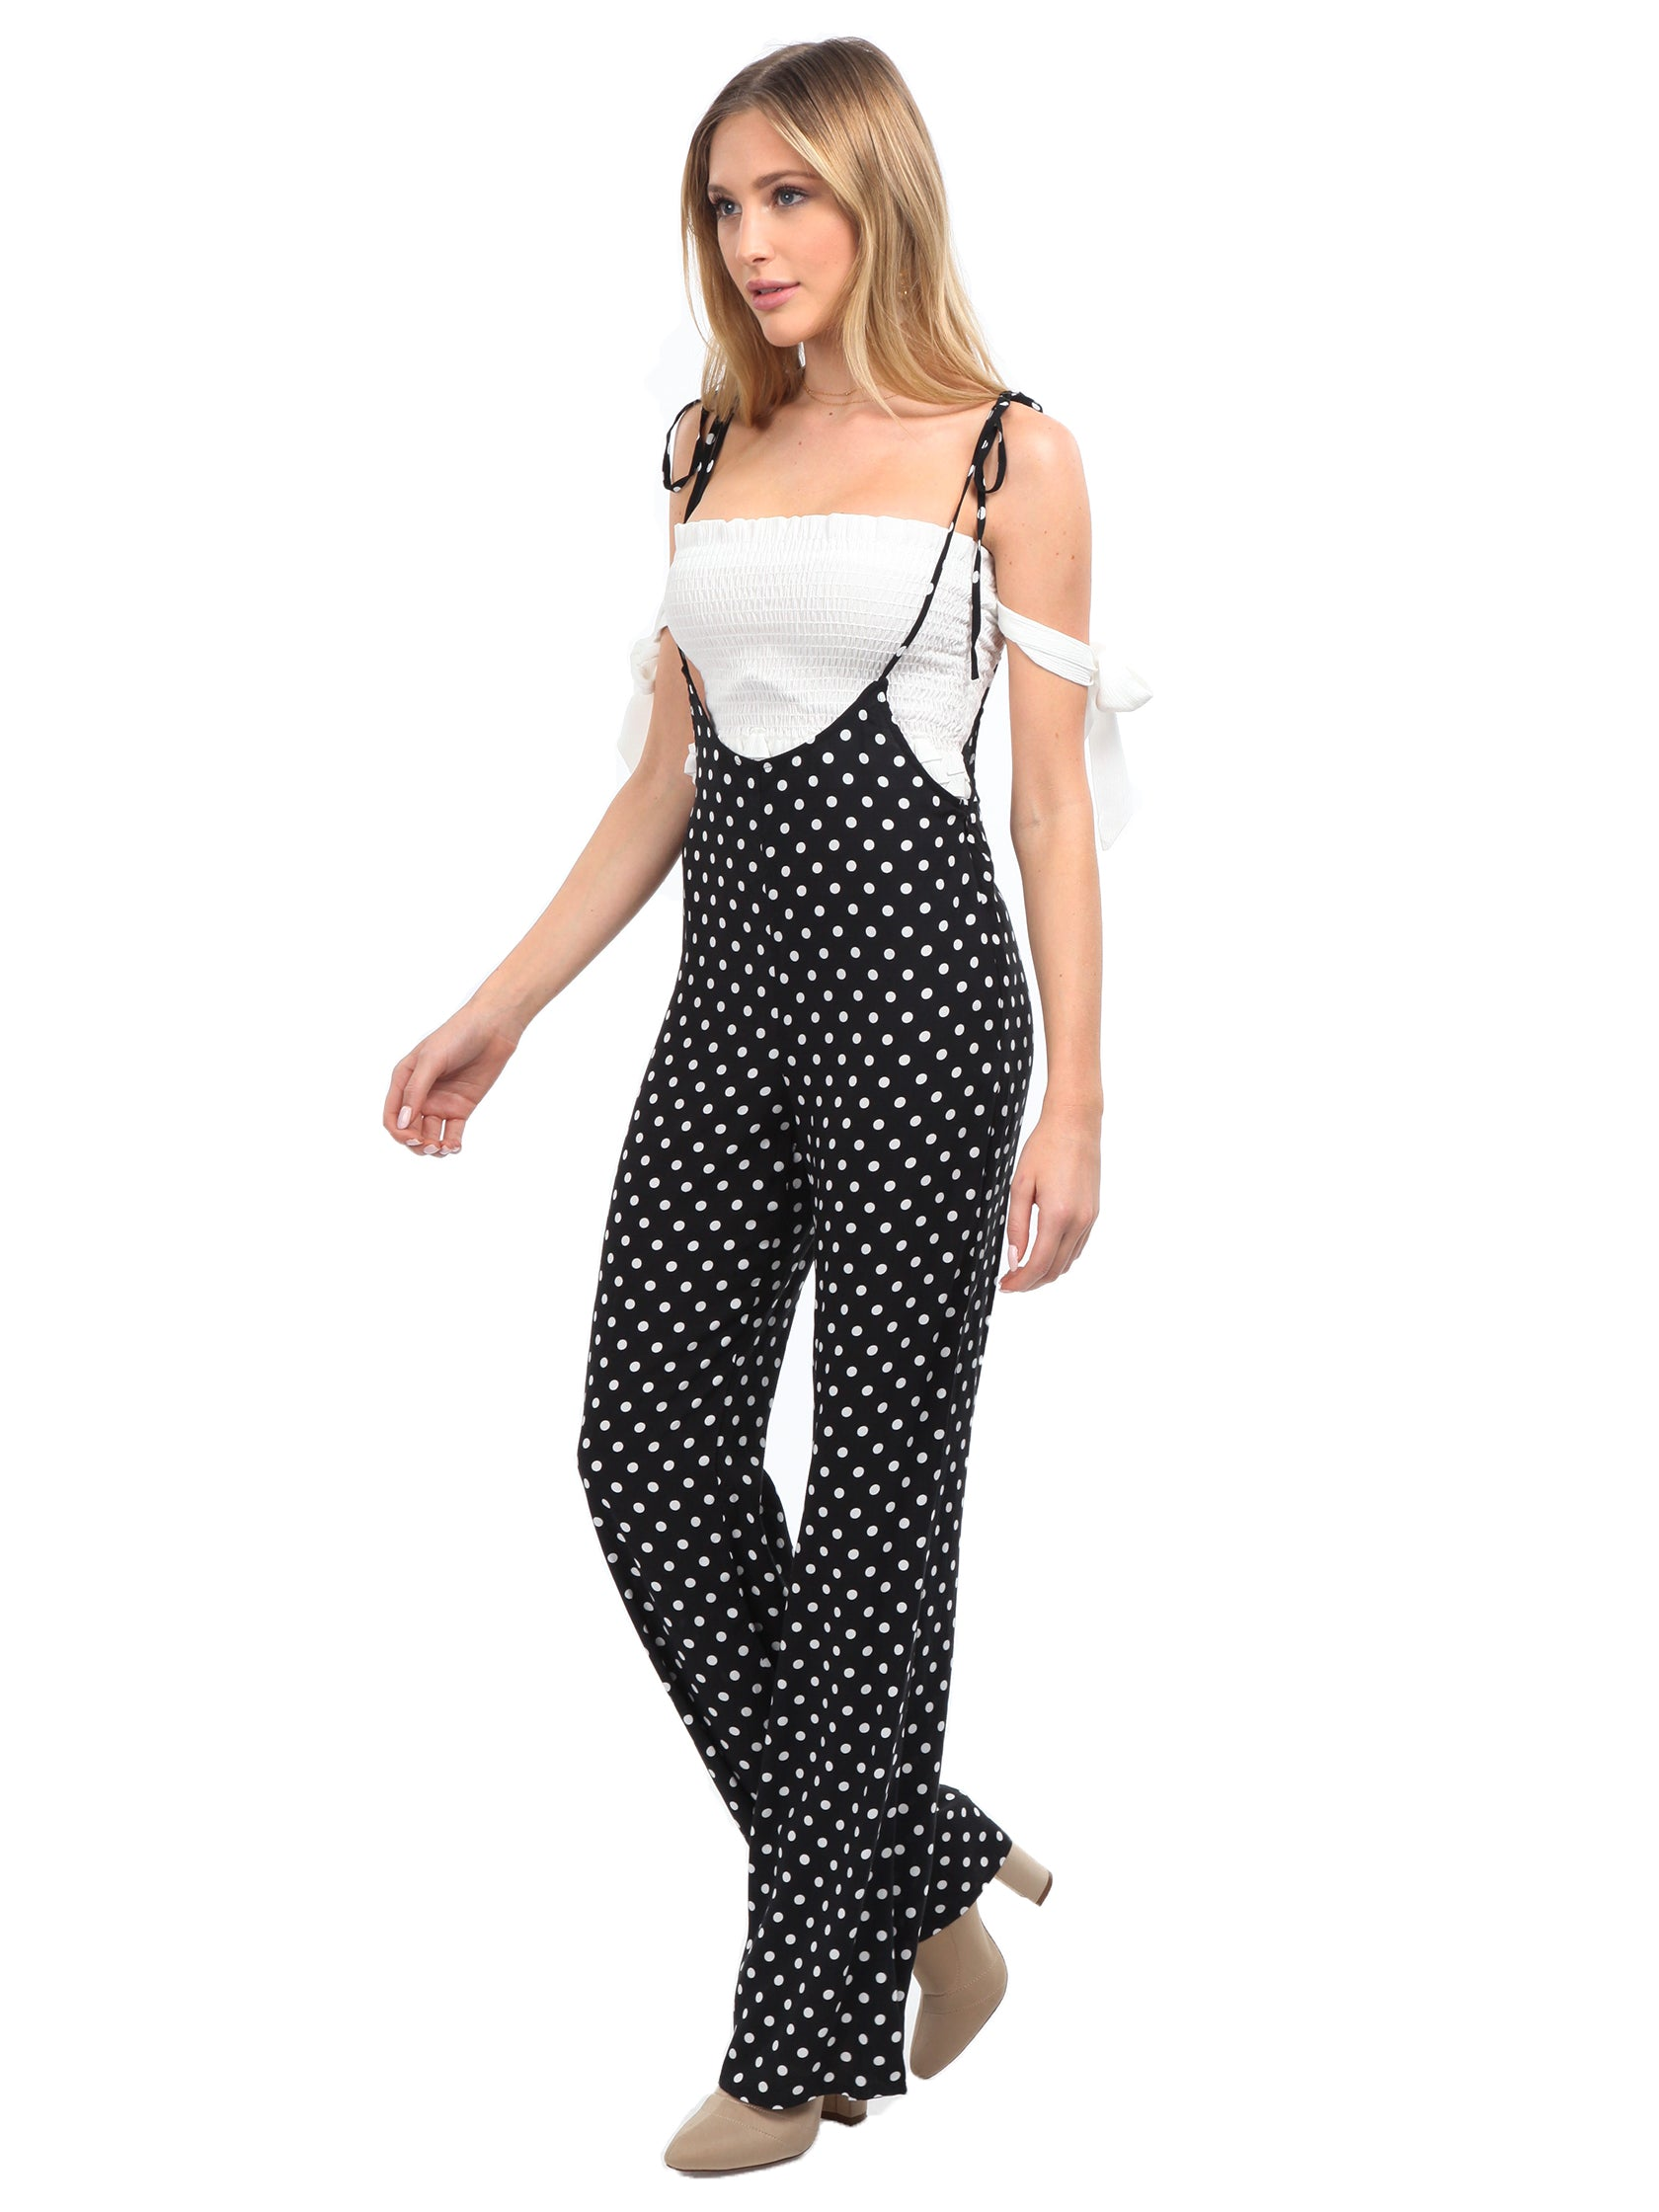 Woman wearing a jumpsuit rental from FashionPass called Sasha Polka Dot Jumpsuit